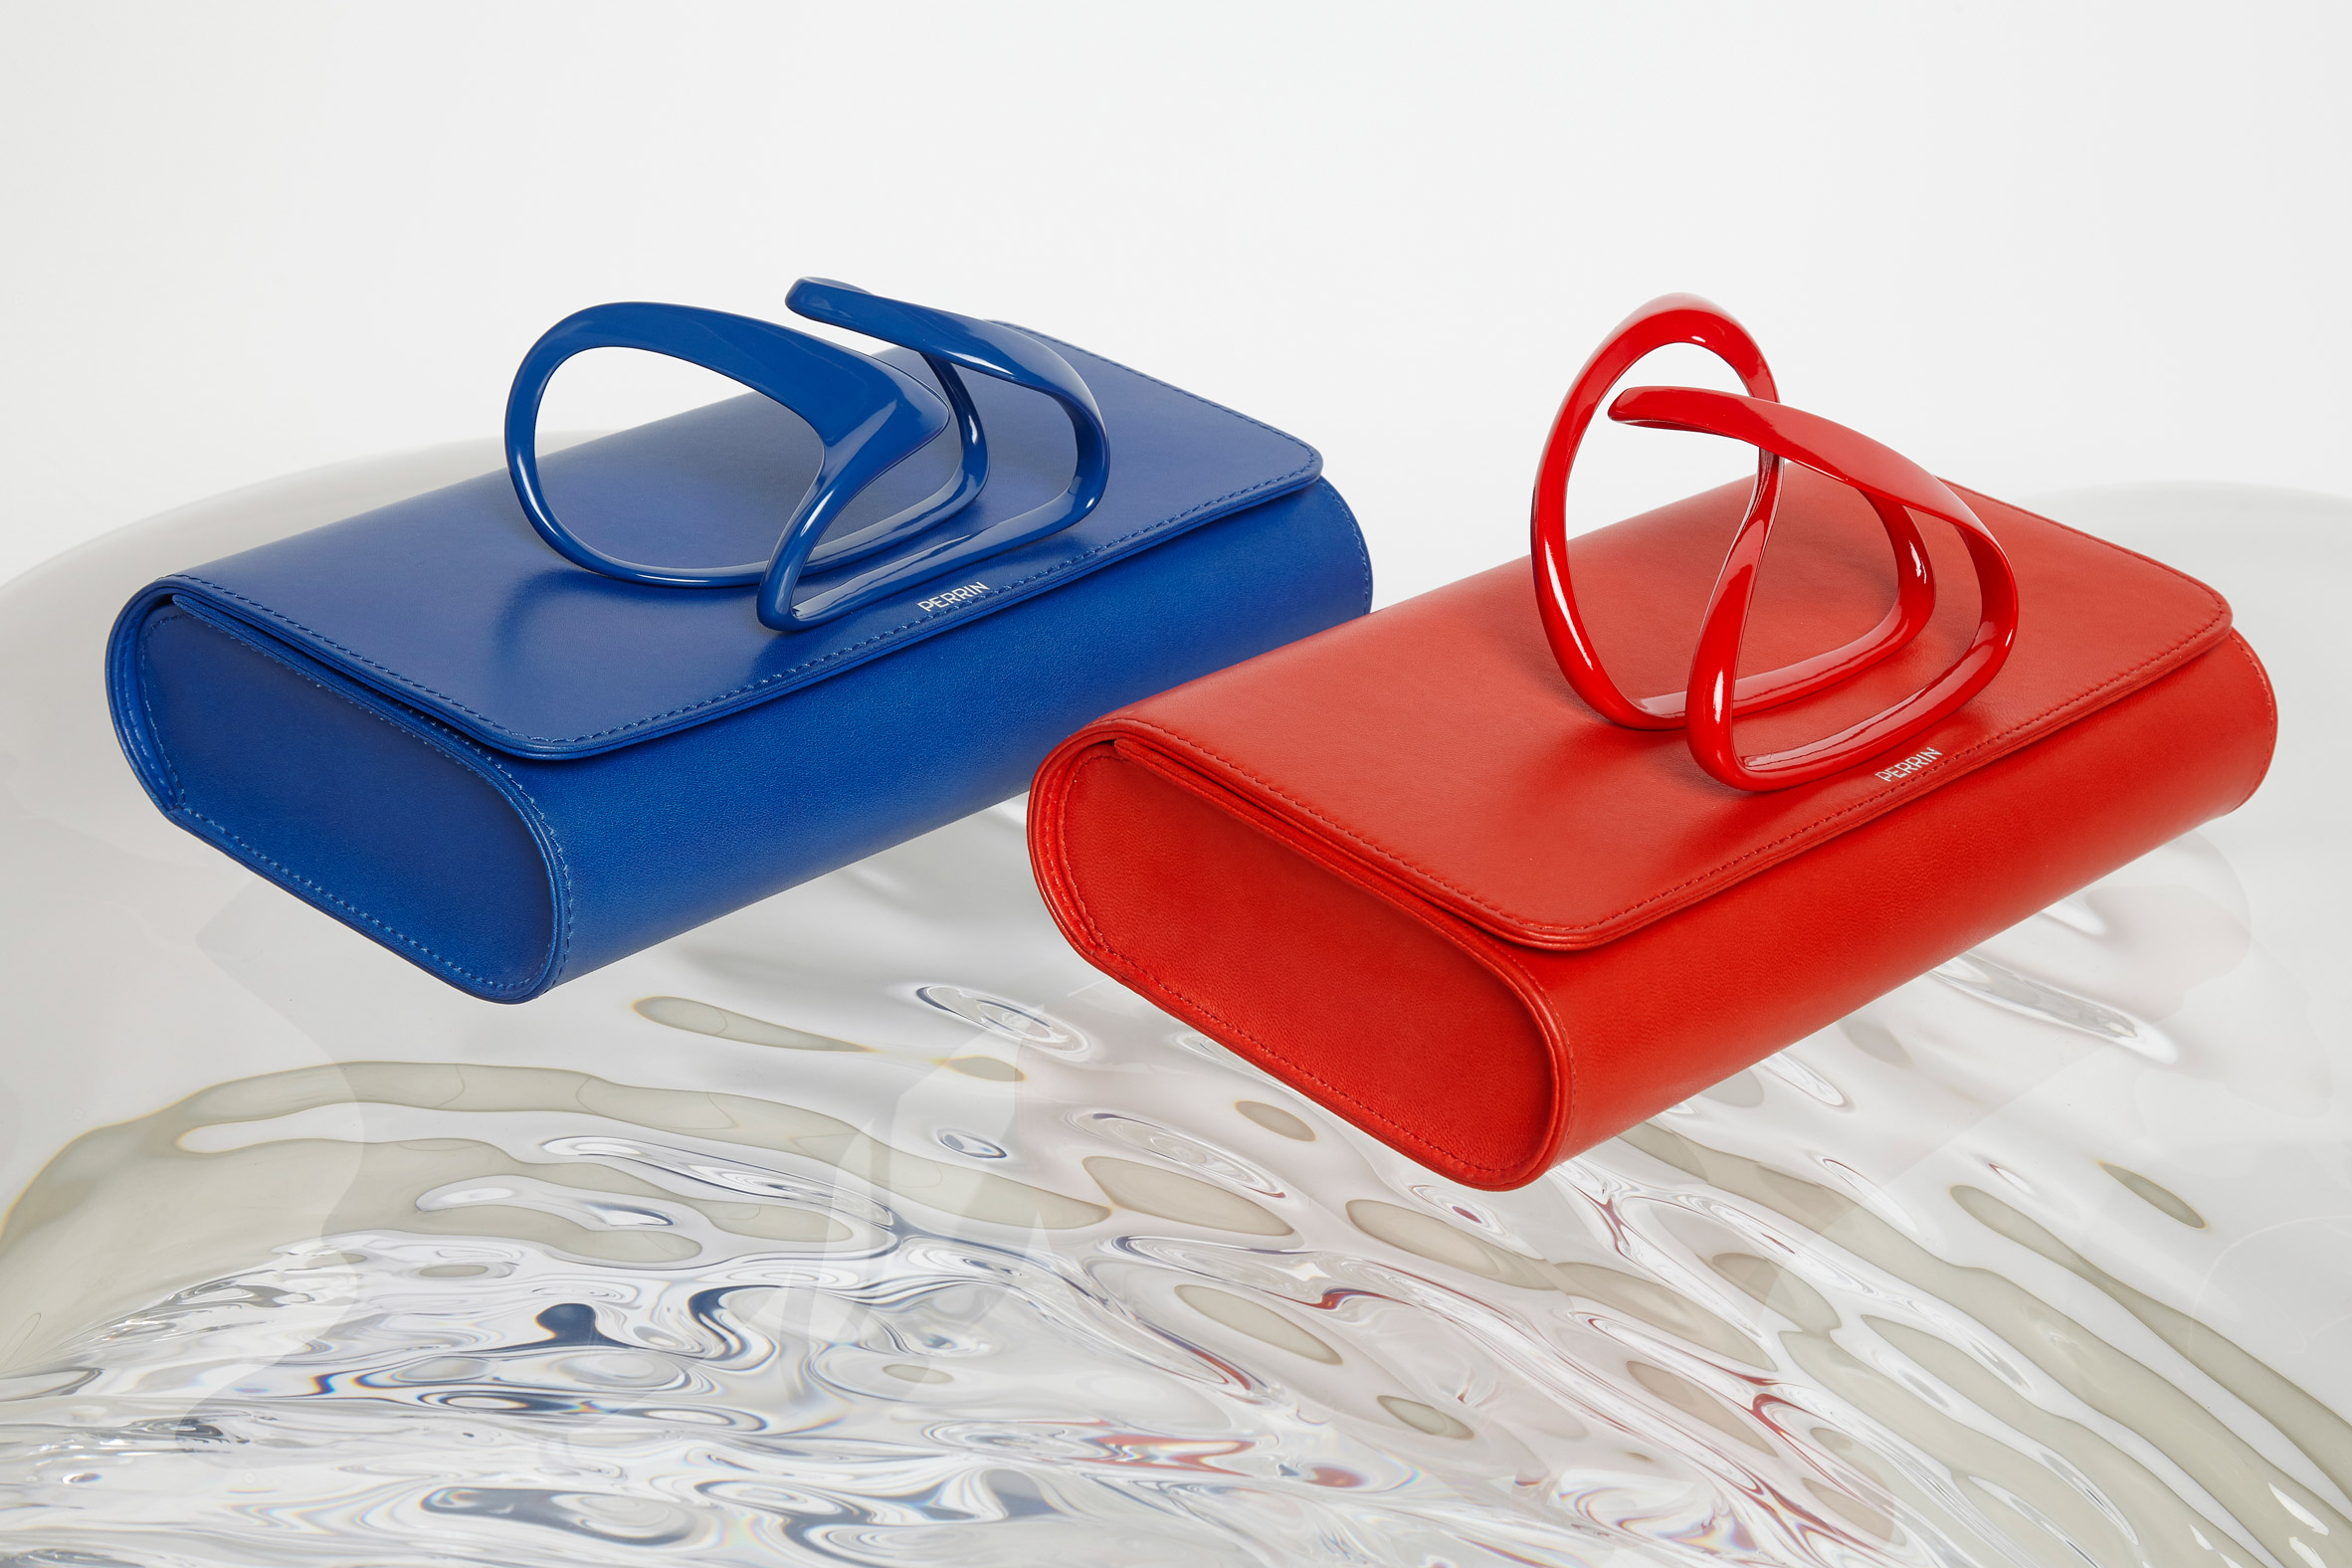 Zaha Hadid Design collaborates with Perrin Paris for range of cuffed clutch bags